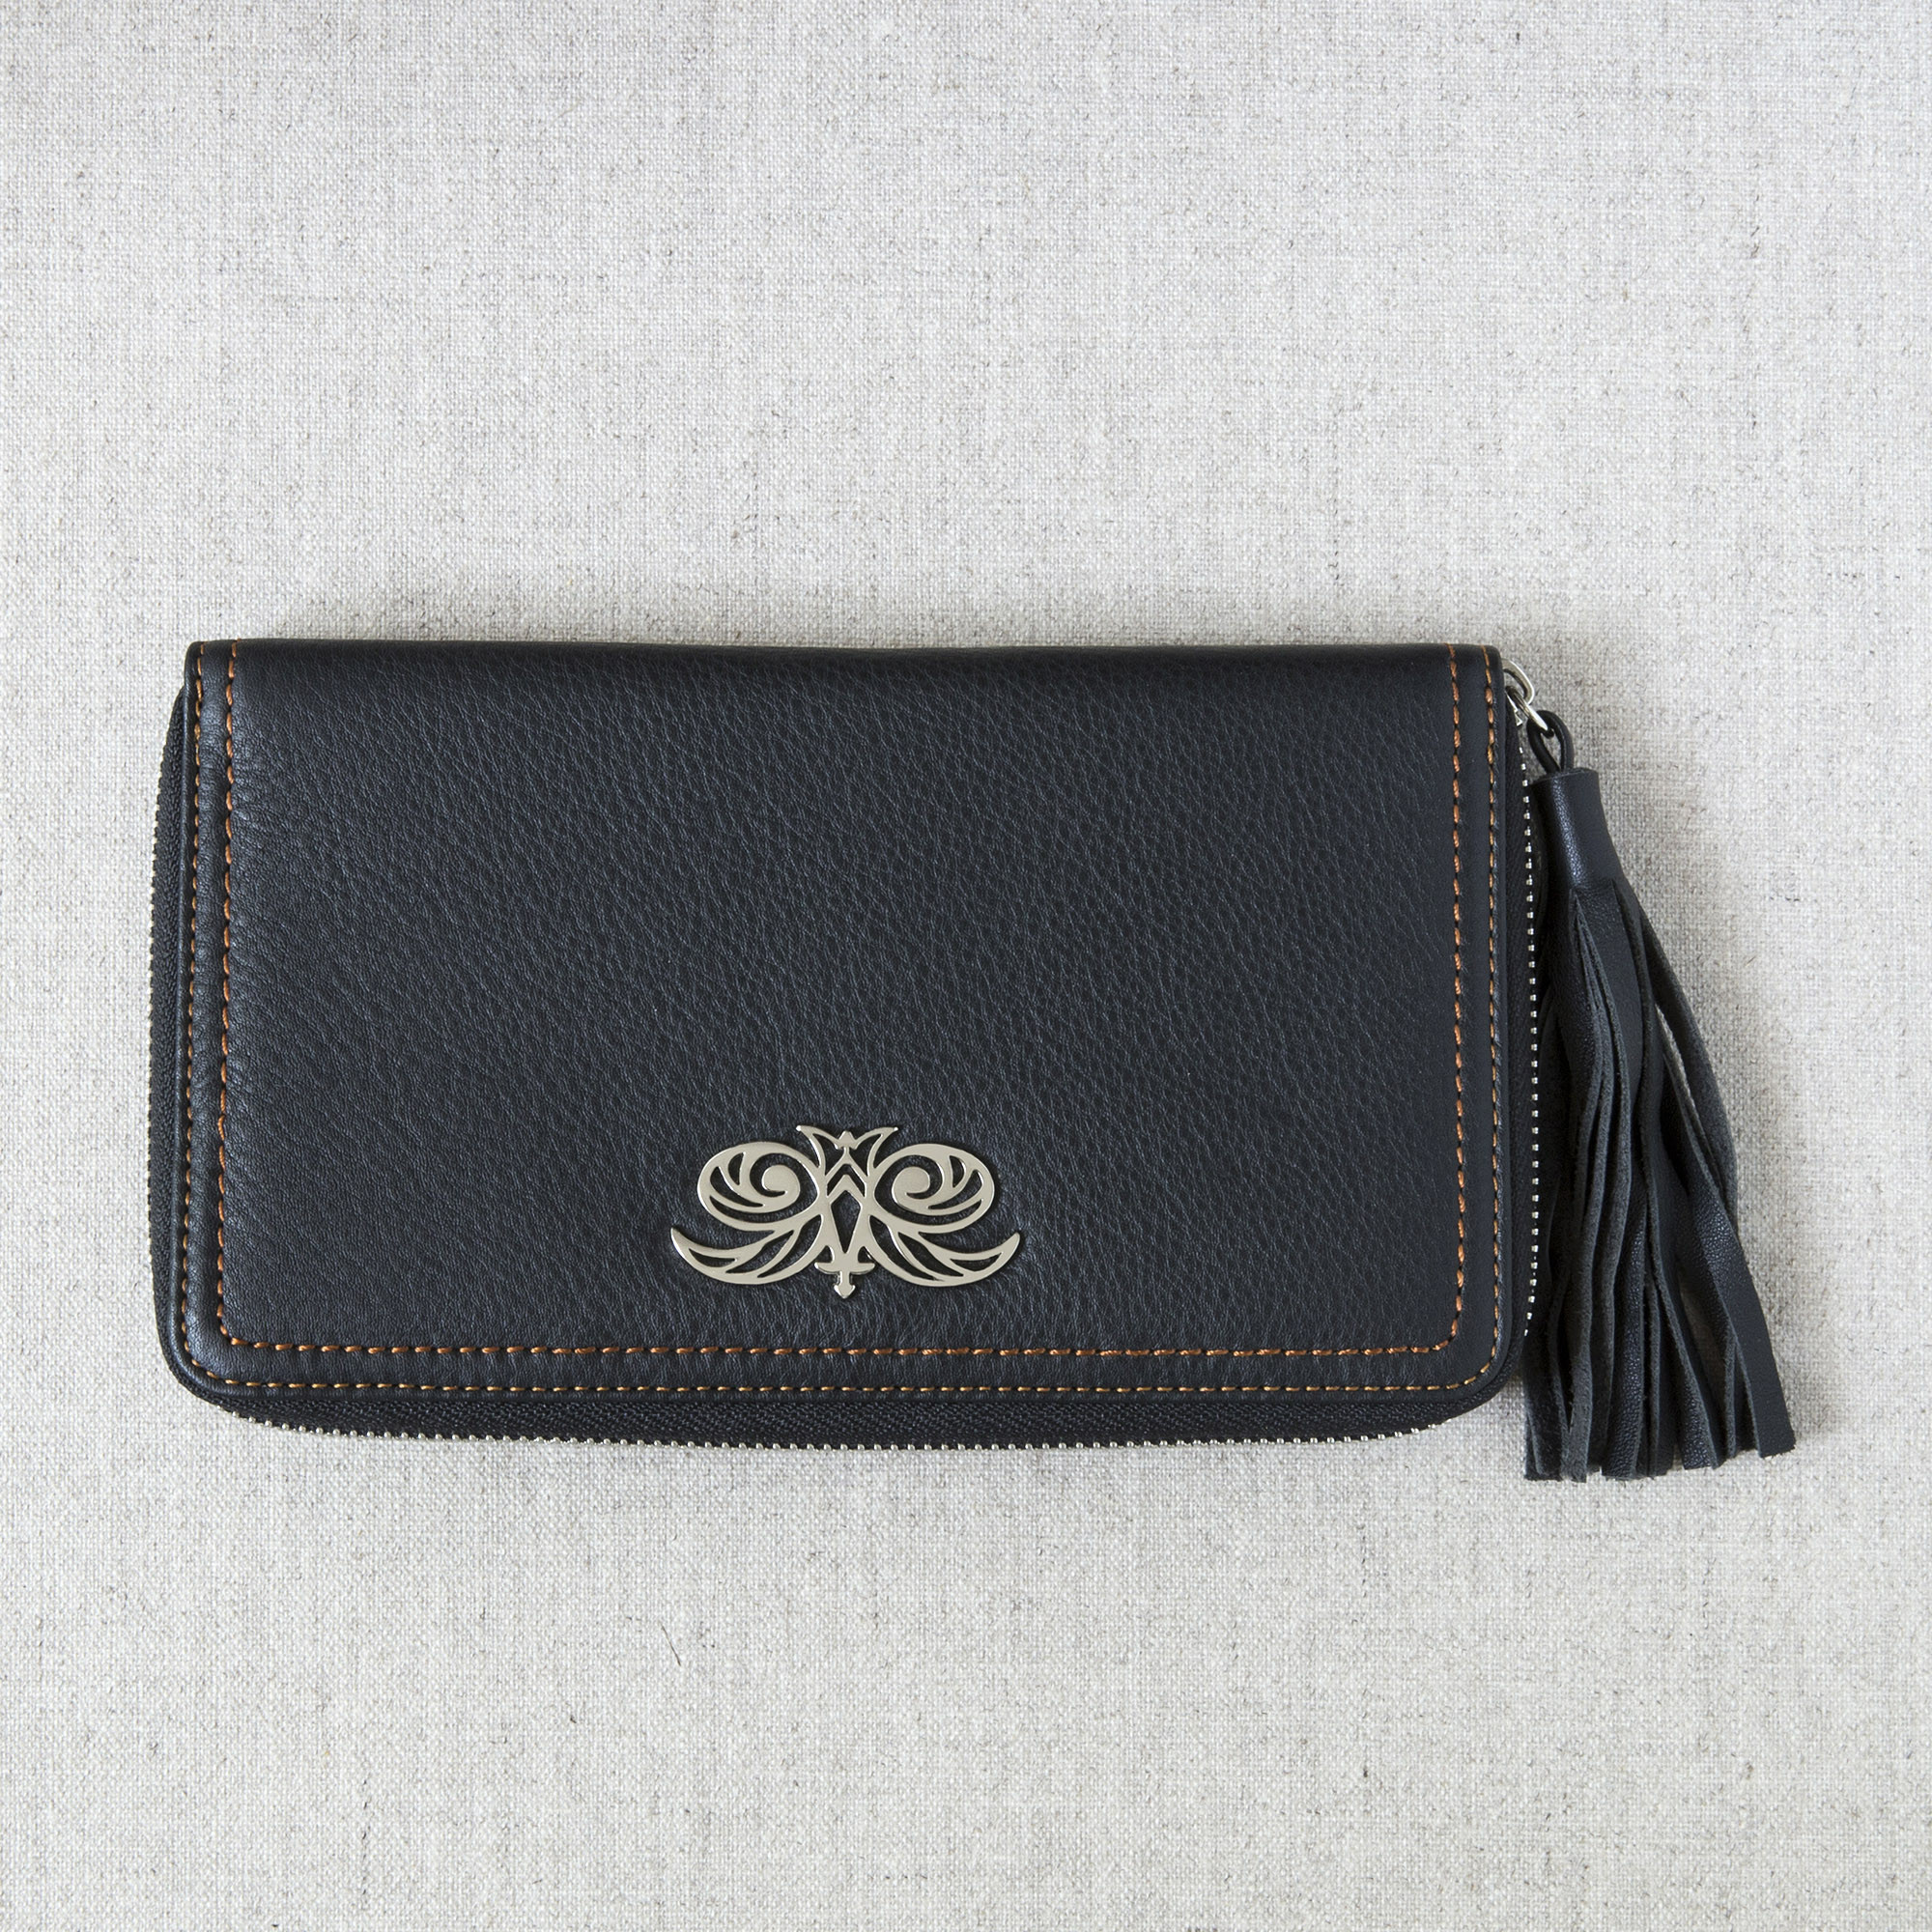 """Zipper organizer """"LISE"""" in grained calfskin black color and leather tassel - front view on linen"""